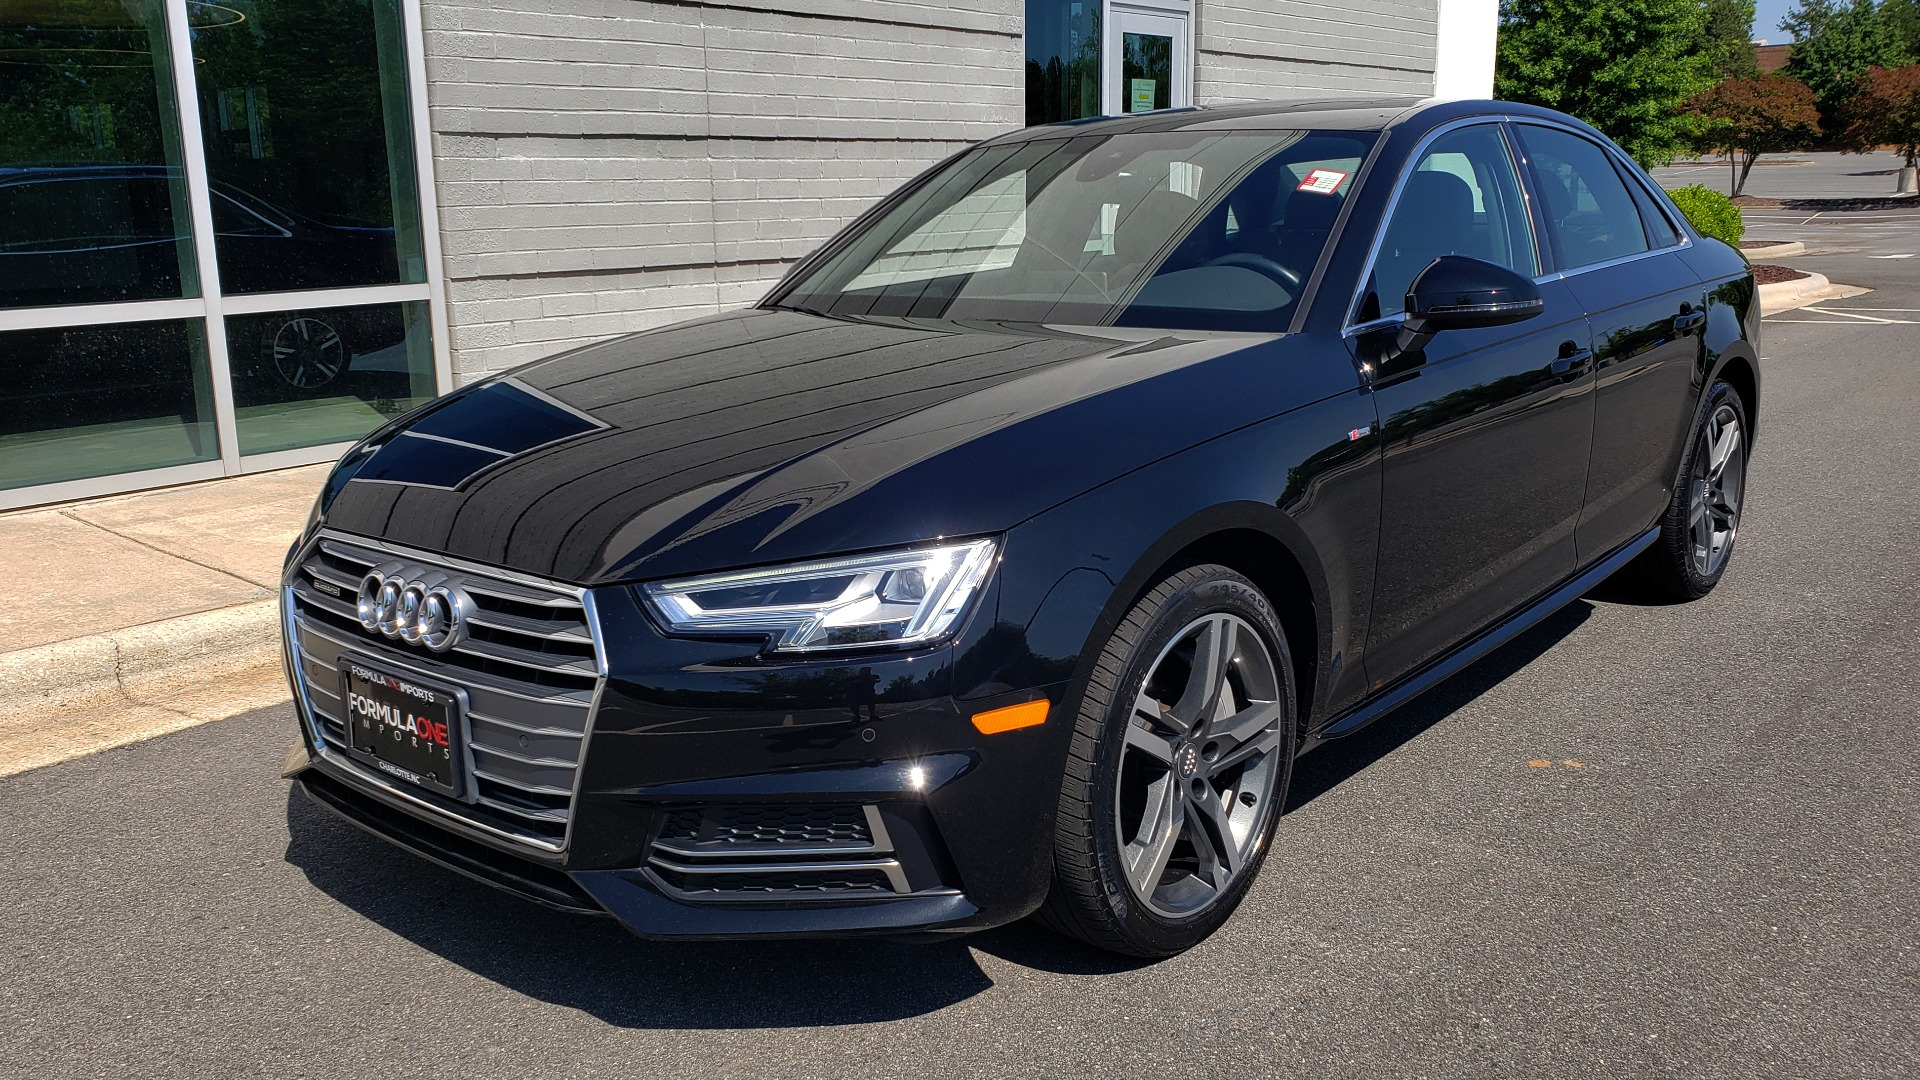 Used 2018 Audi A4 PREMIUM PLUS 2.0T / NAV / SUNROOF / B&O SND / CLD WTHR / REARVIEW for sale $30,695 at Formula Imports in Charlotte NC 28227 1